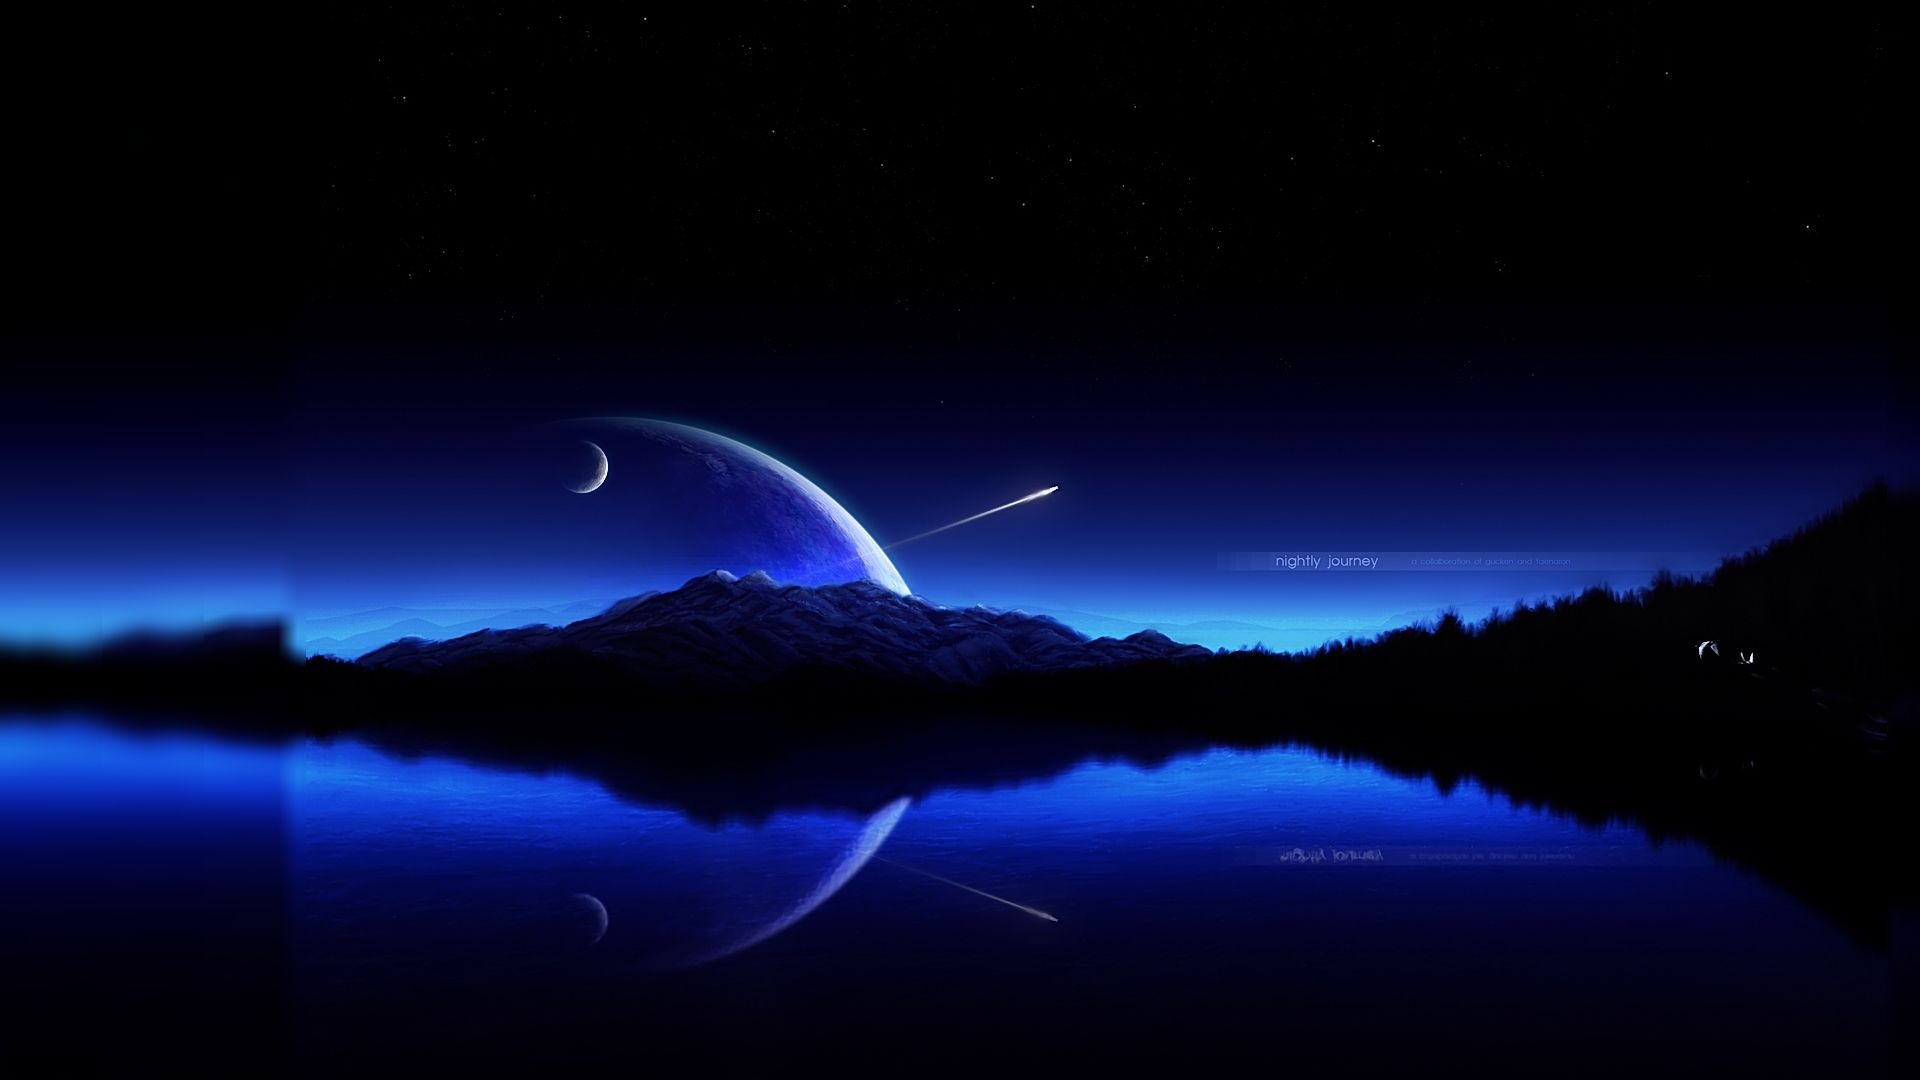 Download Wallpaper For Pc In Hd | Images Wallpapers | Night sky wallpaper, Sky moon, Hd wallpaper